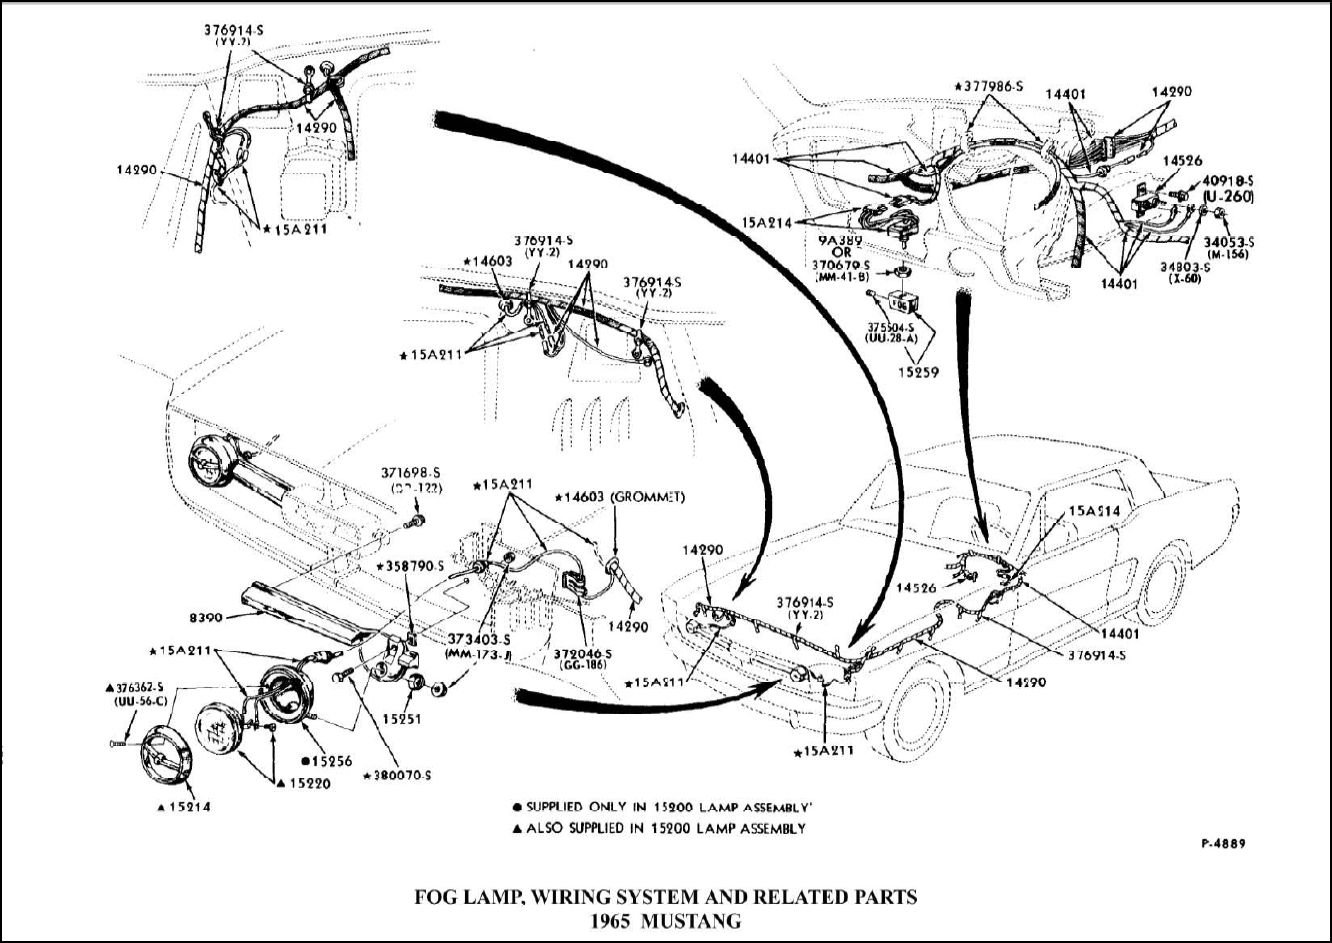 1965 Mustang Wiring Harness - Data Wiring Diagram Today on 1967 mustang wiper motor wiring diagram, 1965 mustang fuel pump diagram, 1965 mustang brake line diagram, 1965 mustang starter solenoid, 1965 mustang engine diagram, mustang wiring harness diagram, 1965 mustang exhaust diagram, 1965 mustang assembly diagram, 1965 mustang 289 hipo engine, 1965 mustang outline, 1965 mustang blueprints, 1965 mustang door diagram, 1964 mustang wiring diagram, 1965 mustang burnt amber, 1966 mustang alternator diagram, 1965 mustang fuse box diagram, 1965 mustang voltage regulator diagram, ford mustang wiring diagram, 1965 mustang tachometer diagram, 1966 mustang wiring diagram,